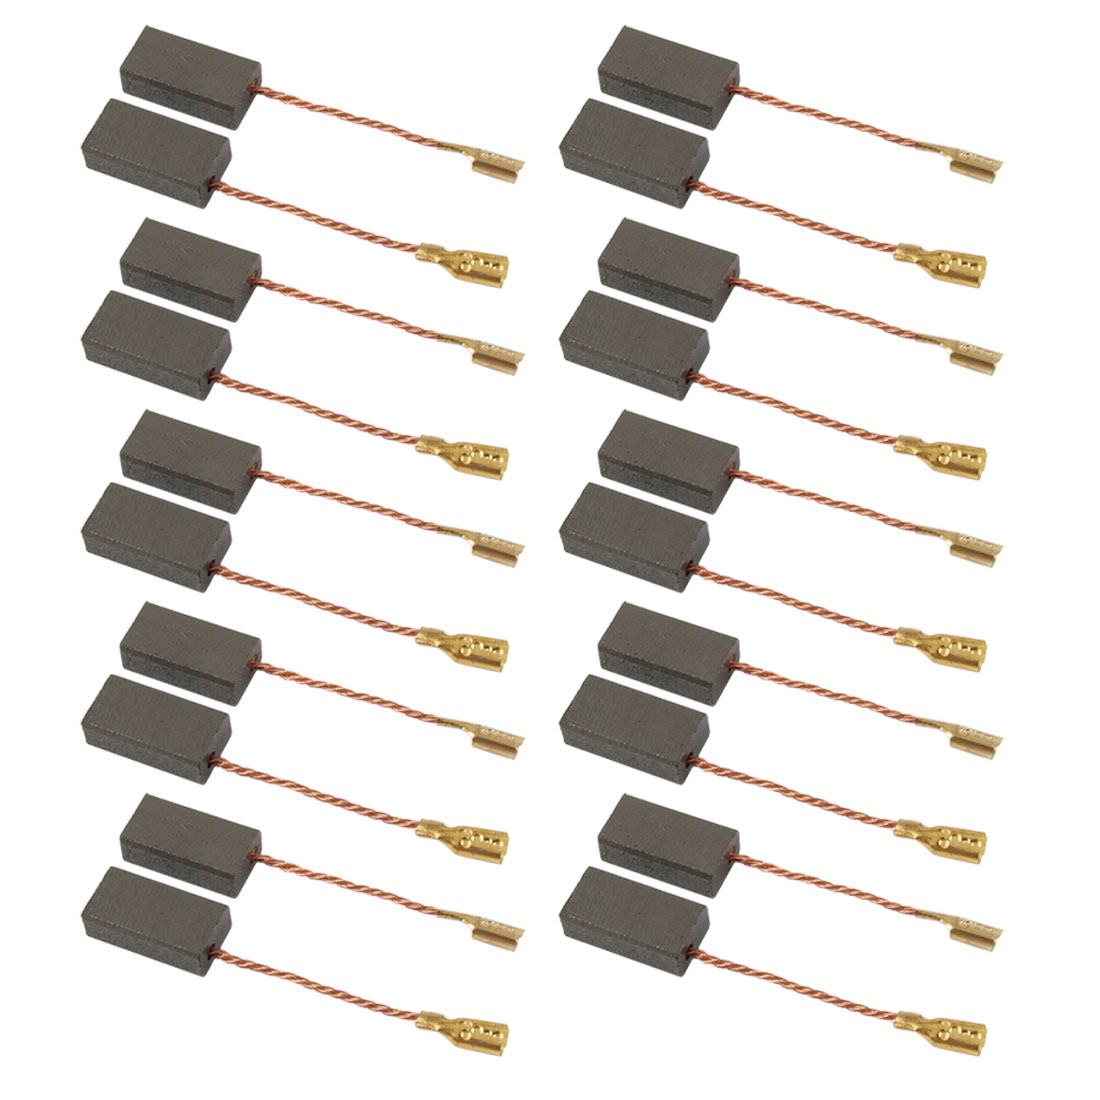 10 Pairs 5 x 8 x 15mm Planer Motor Carbon Brushes for Bosch